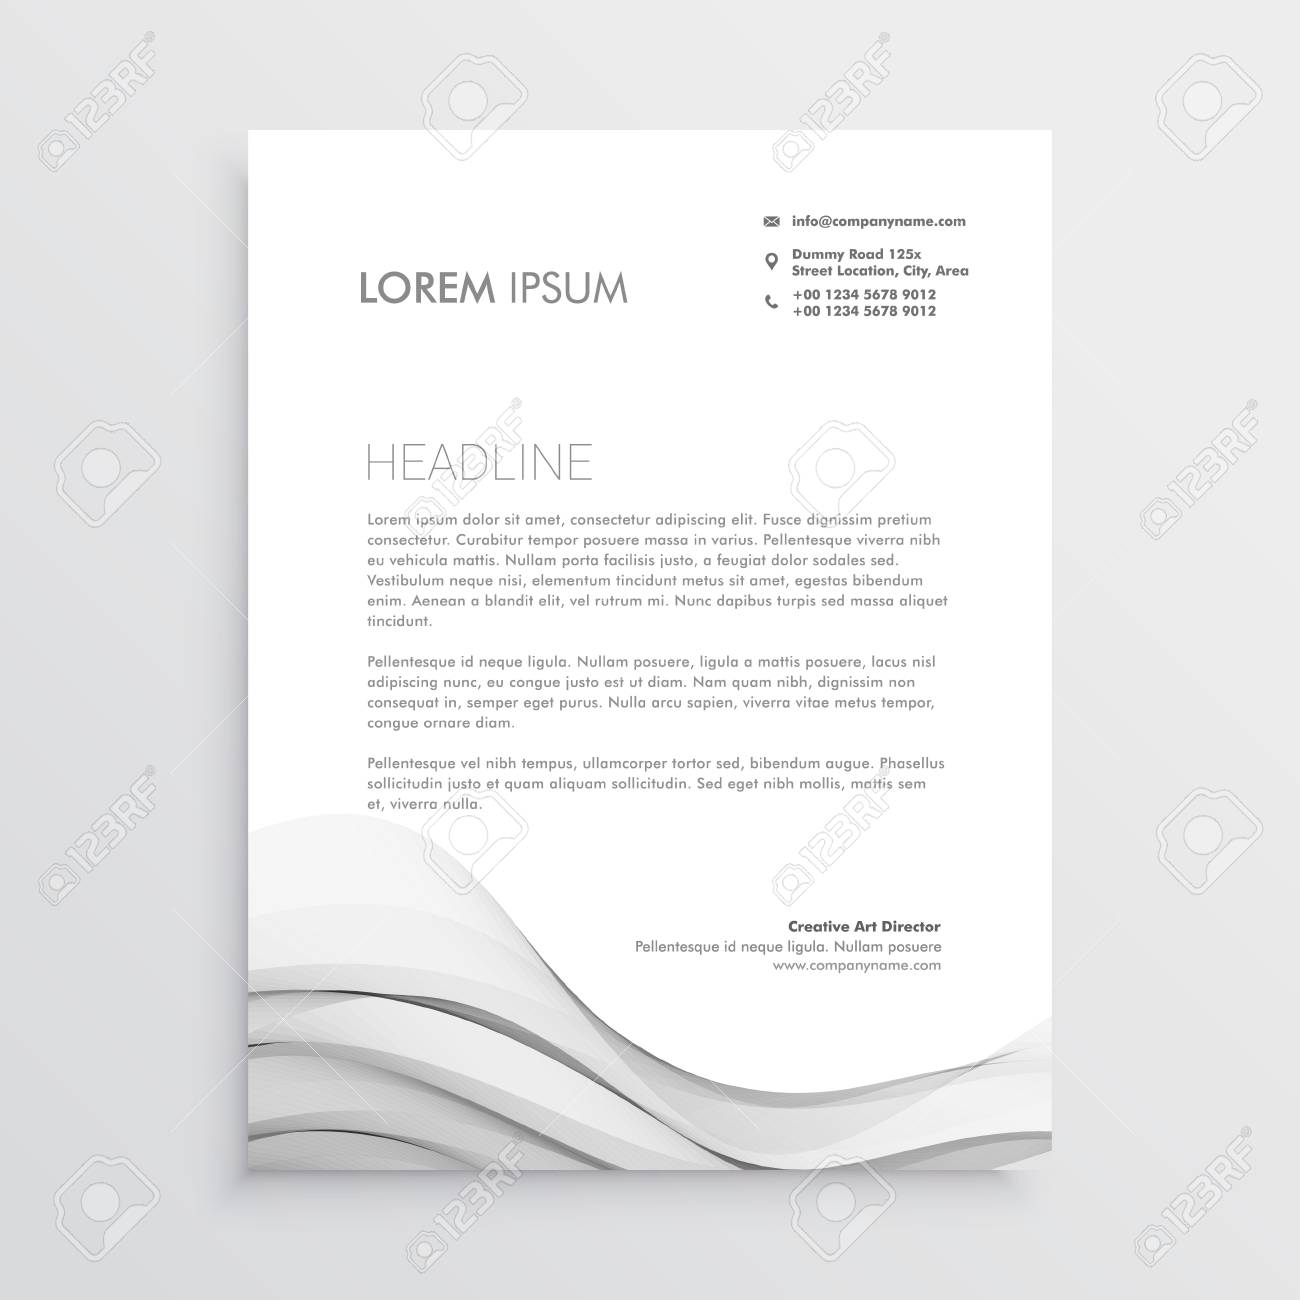 Clean letterhead vector design template royalty free cliparts clean letterhead vector design template stock vector 95821674 spiritdancerdesigns Image collections